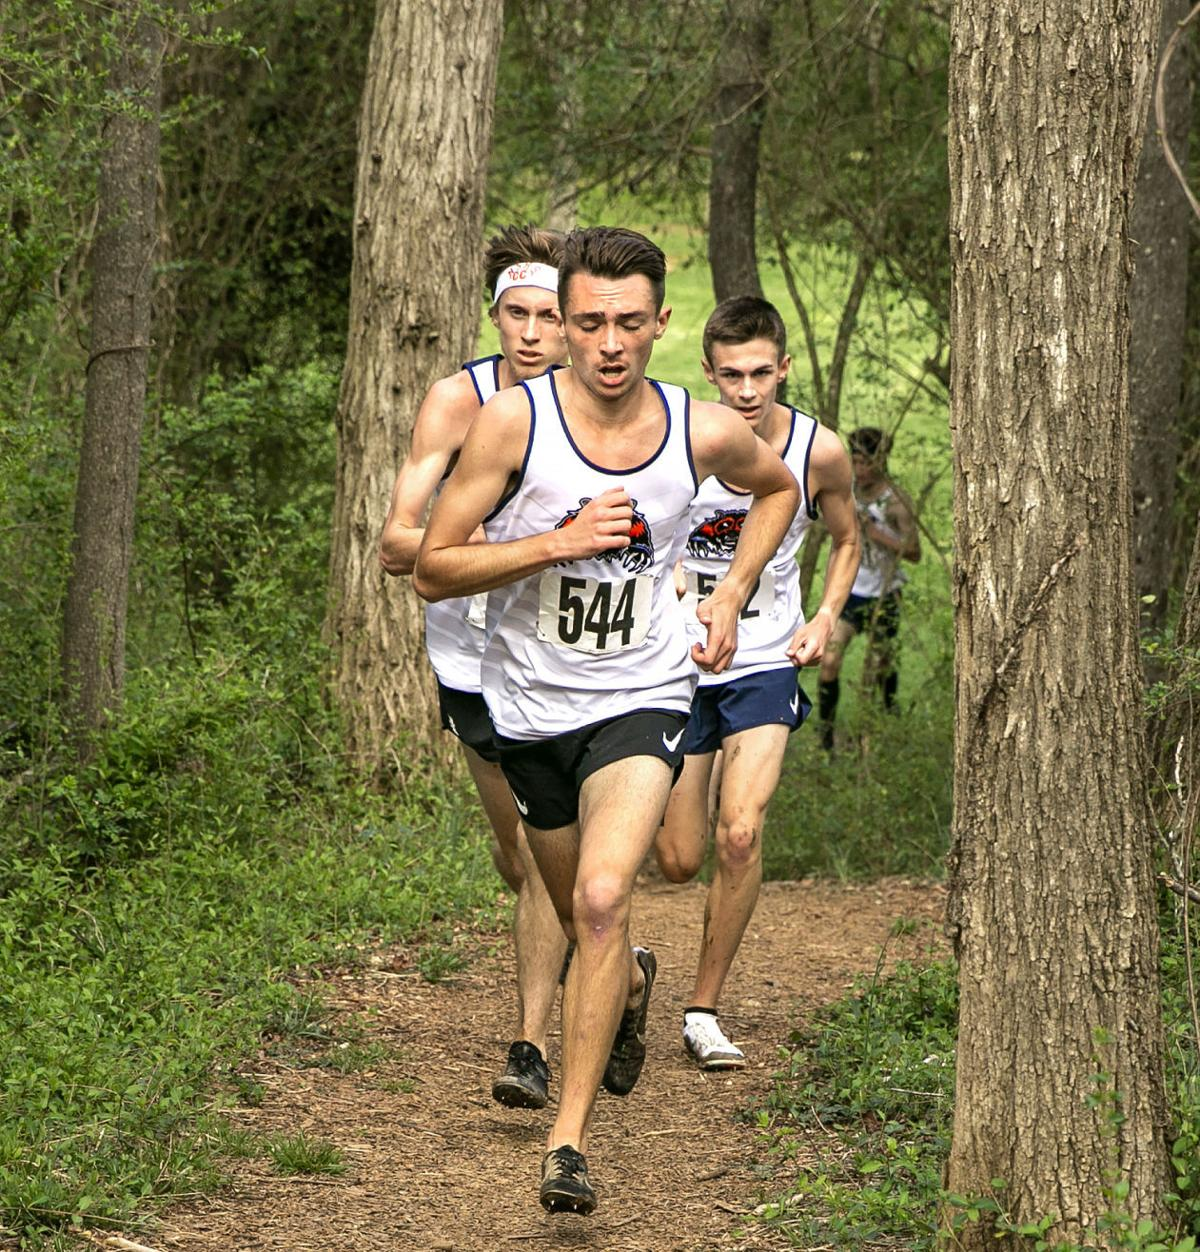 Commonwealth cross country